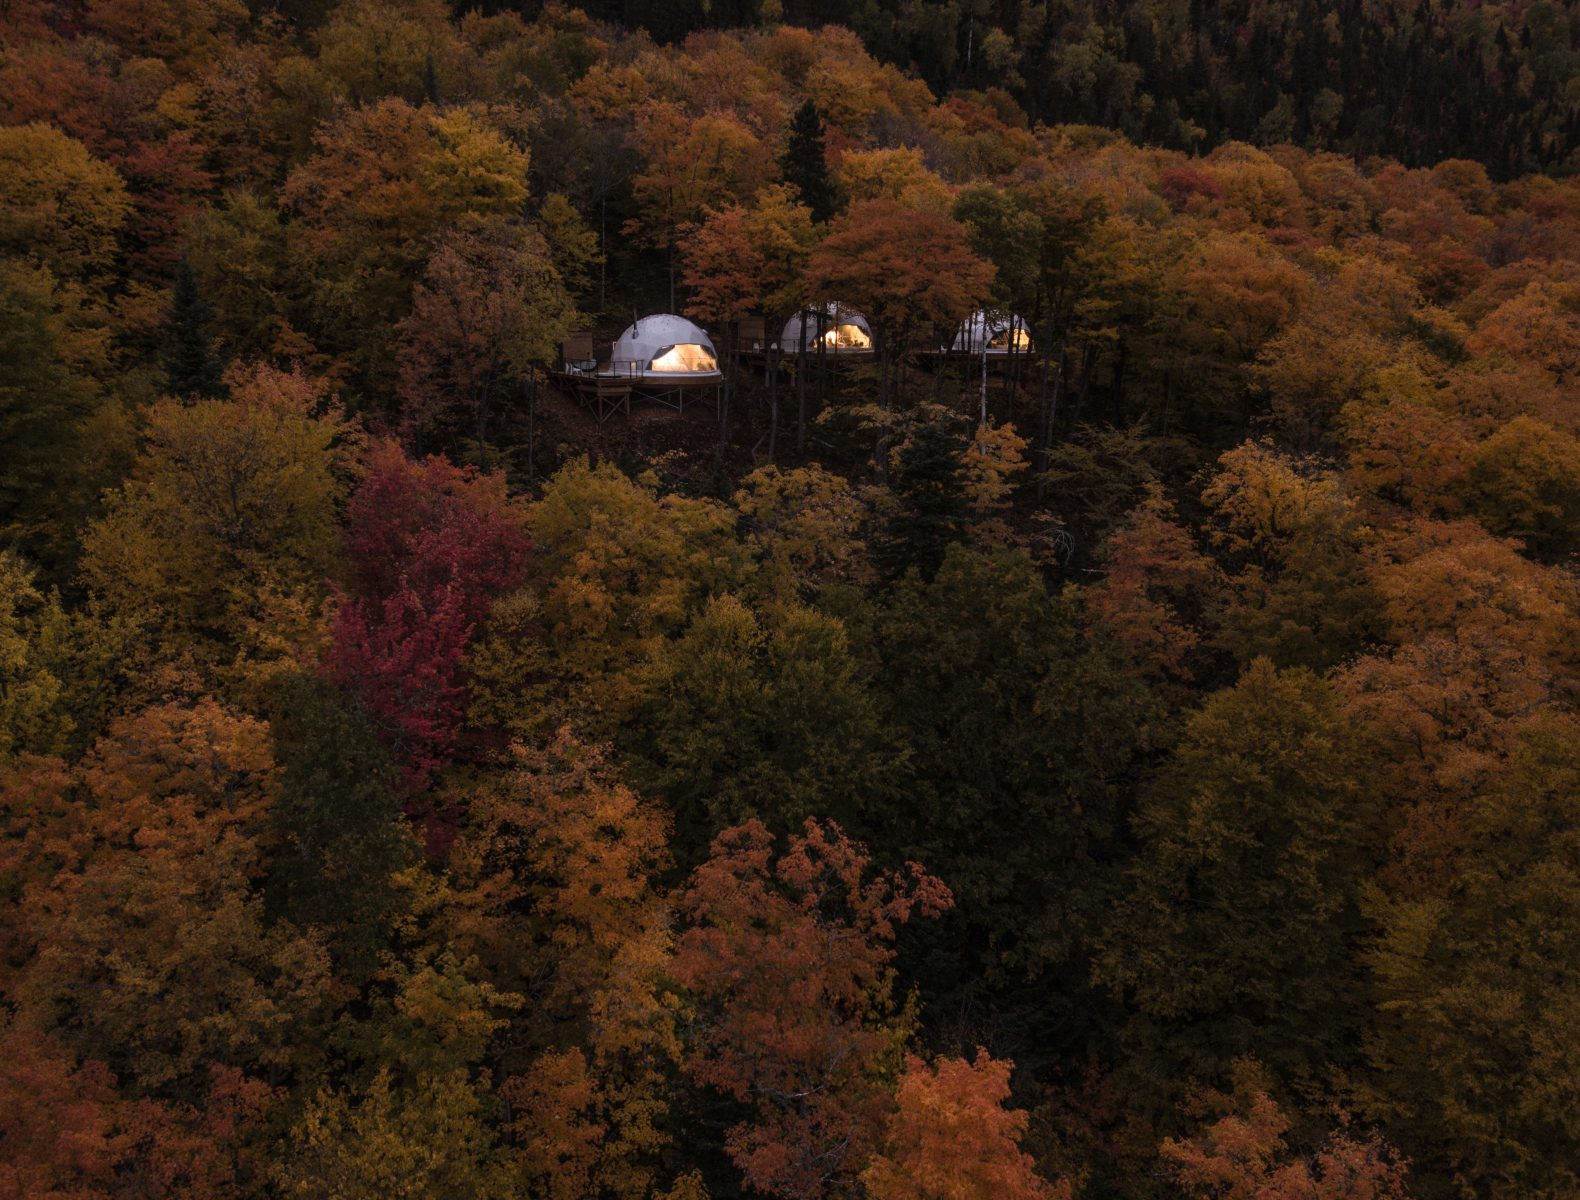 Eco-friendly geodomes provide a luxurious stay in an idyllic Quebec